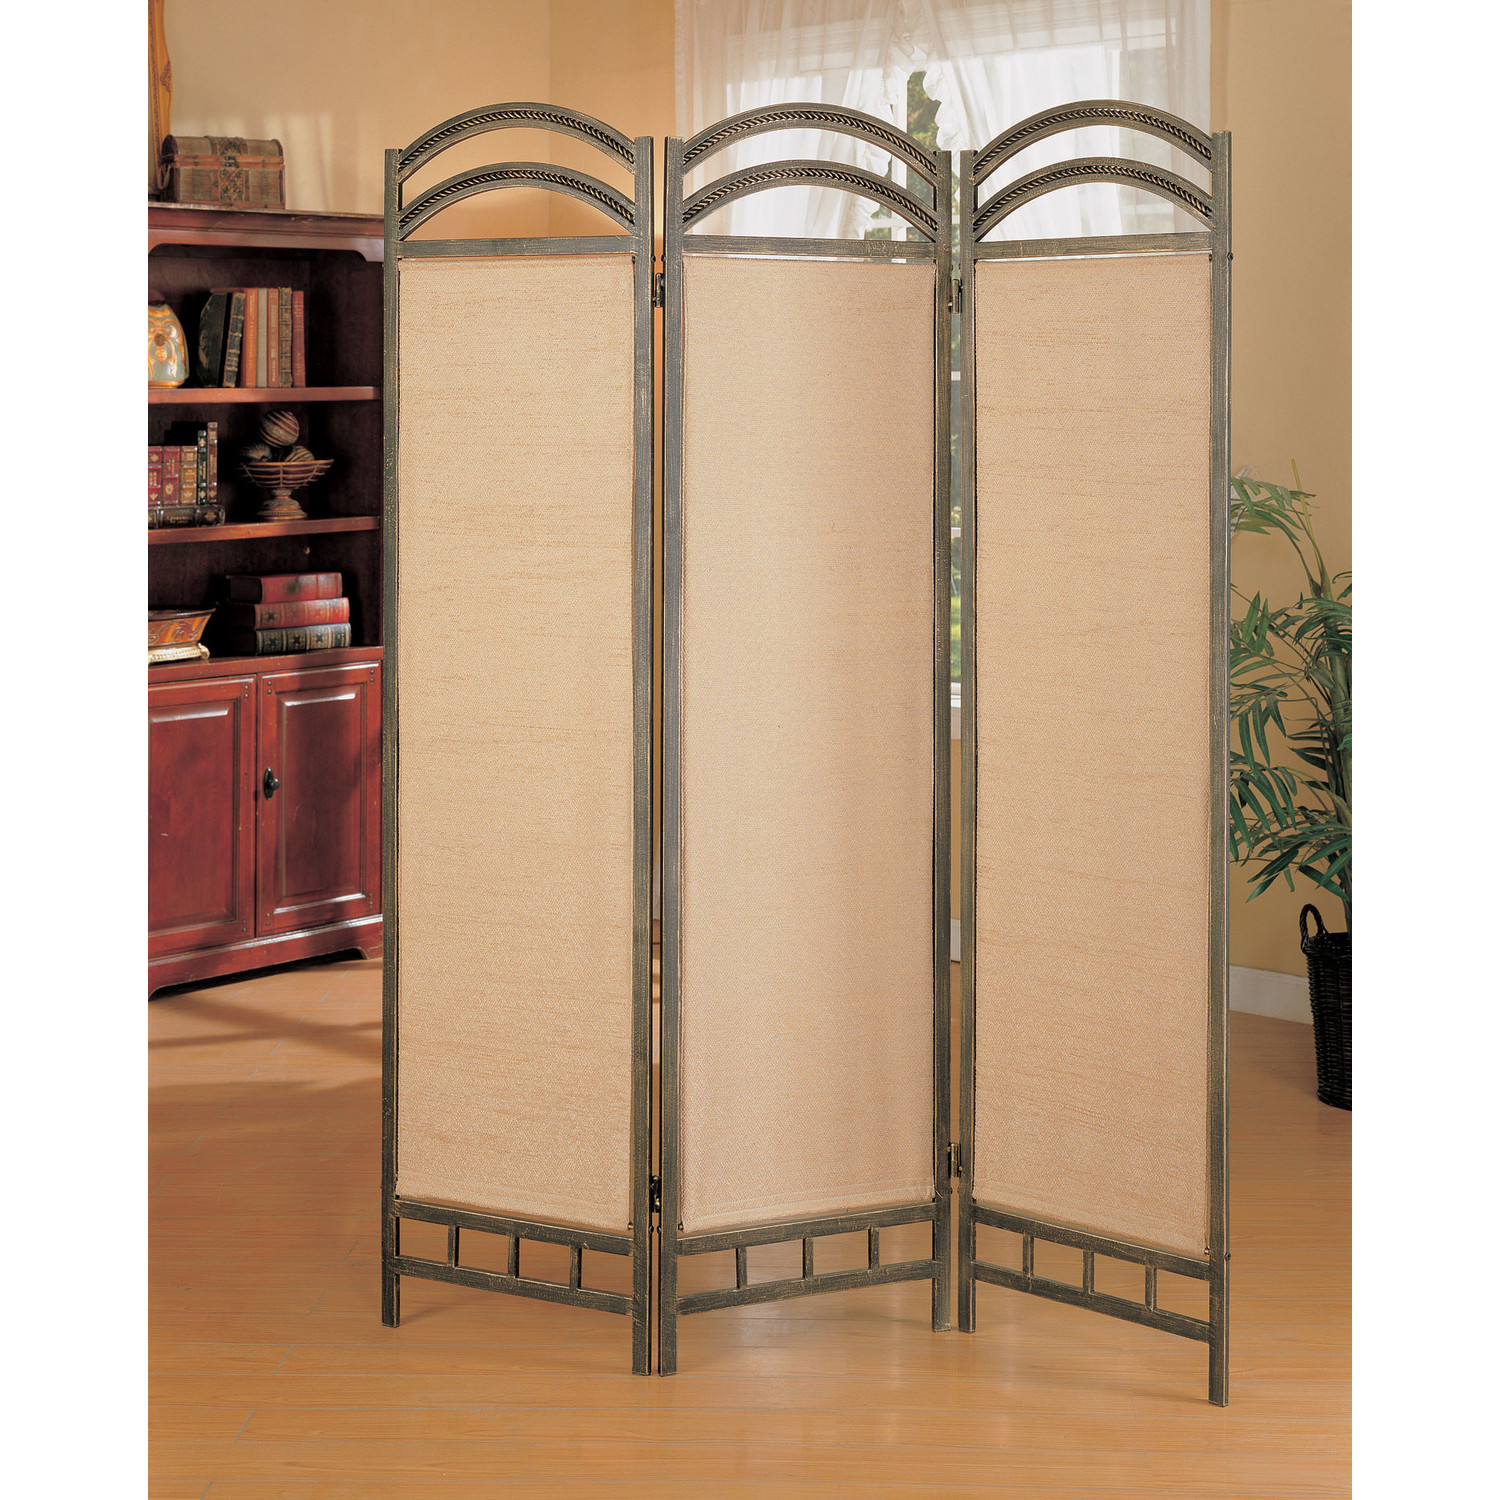 Privacy Room Dividers | Room Separators Ikea | Oriental Room Dividers